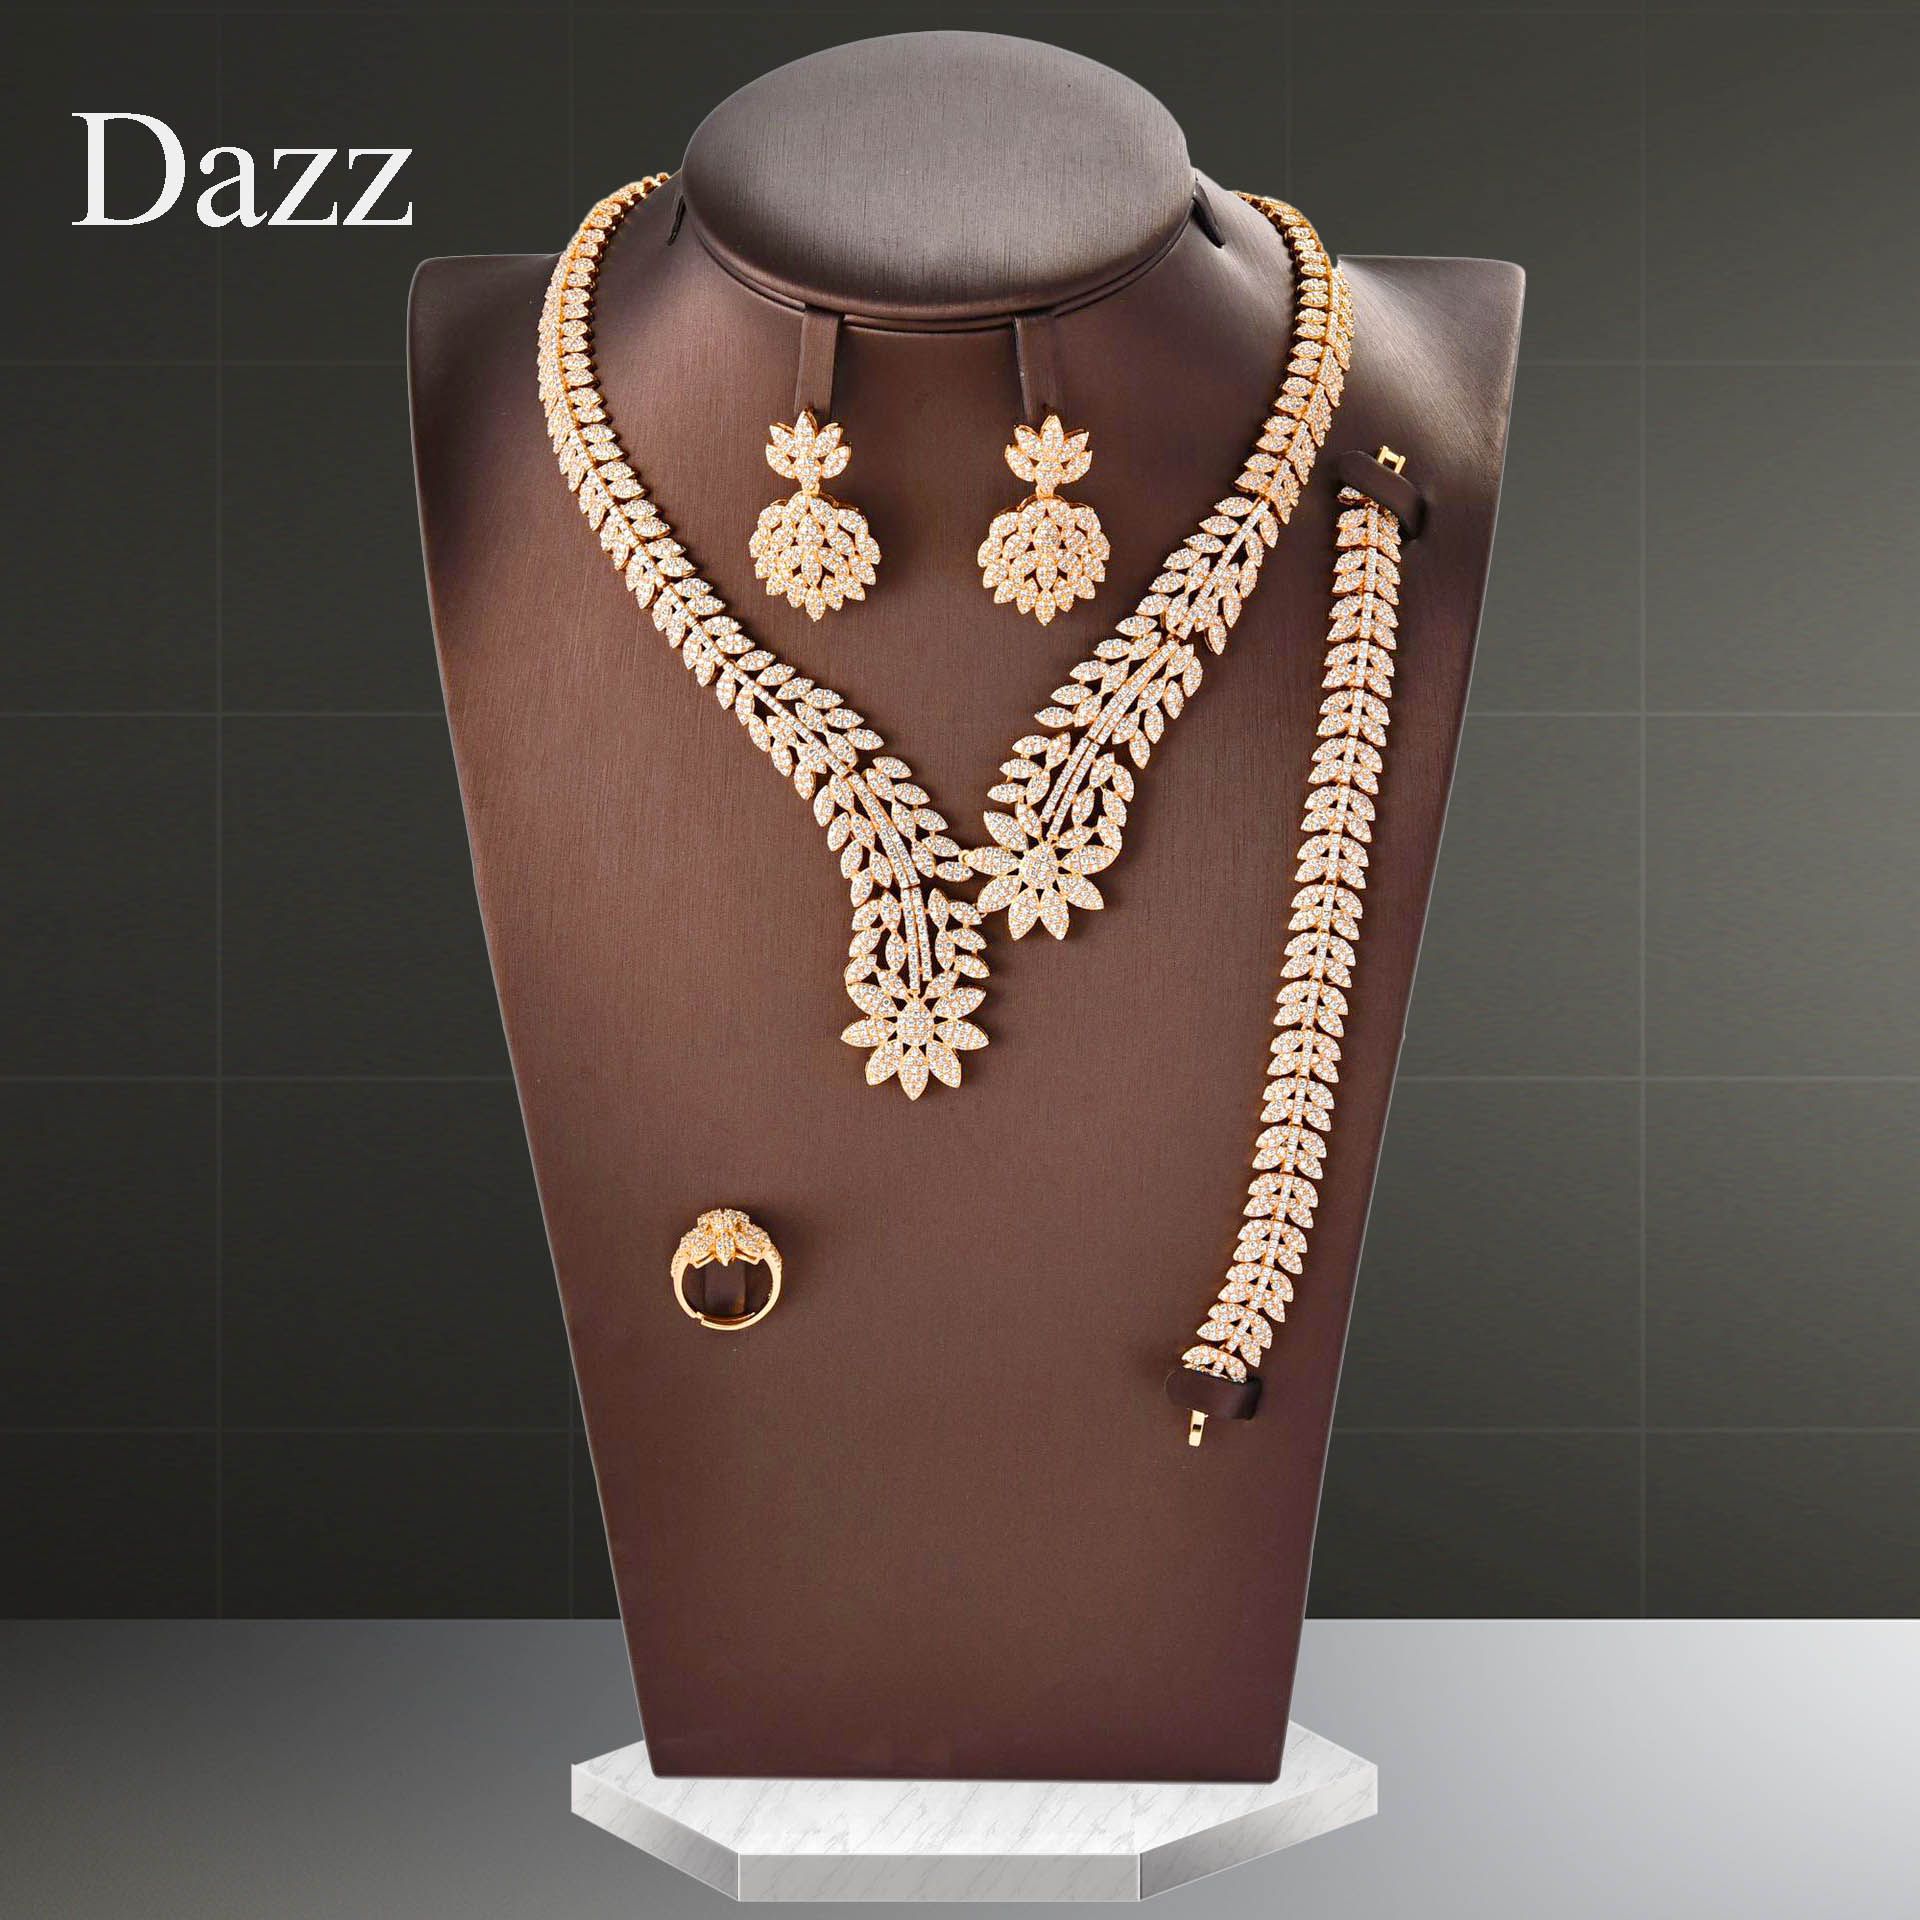 Dazz Gold Luxury Leaf Nigeria Jewelry Set AAAA Zircon Women Wedding Dress Dubai Flowers Bridal Necklace Earring Ring Sets 2020